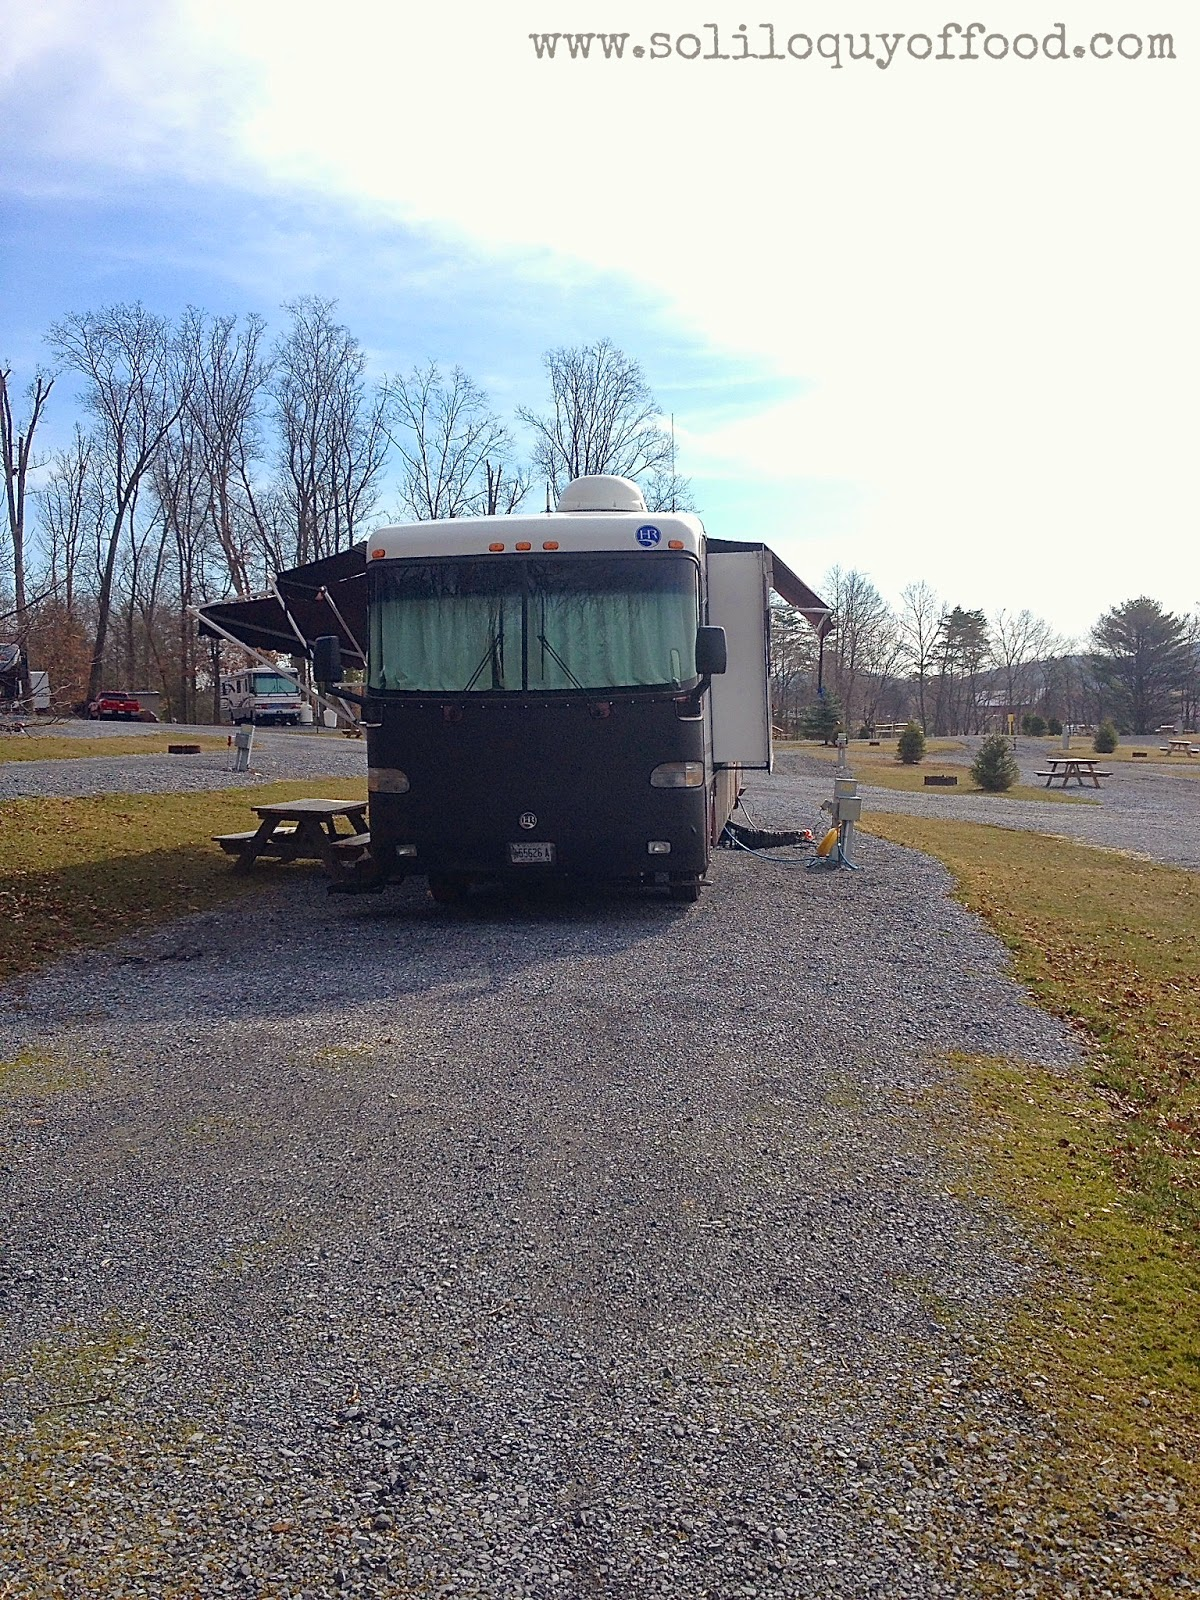 Chaos On Wheels | Yup, the awnings work!  Twin Grove RV Park, Pine Grove, PA - www.soliloquyoffood